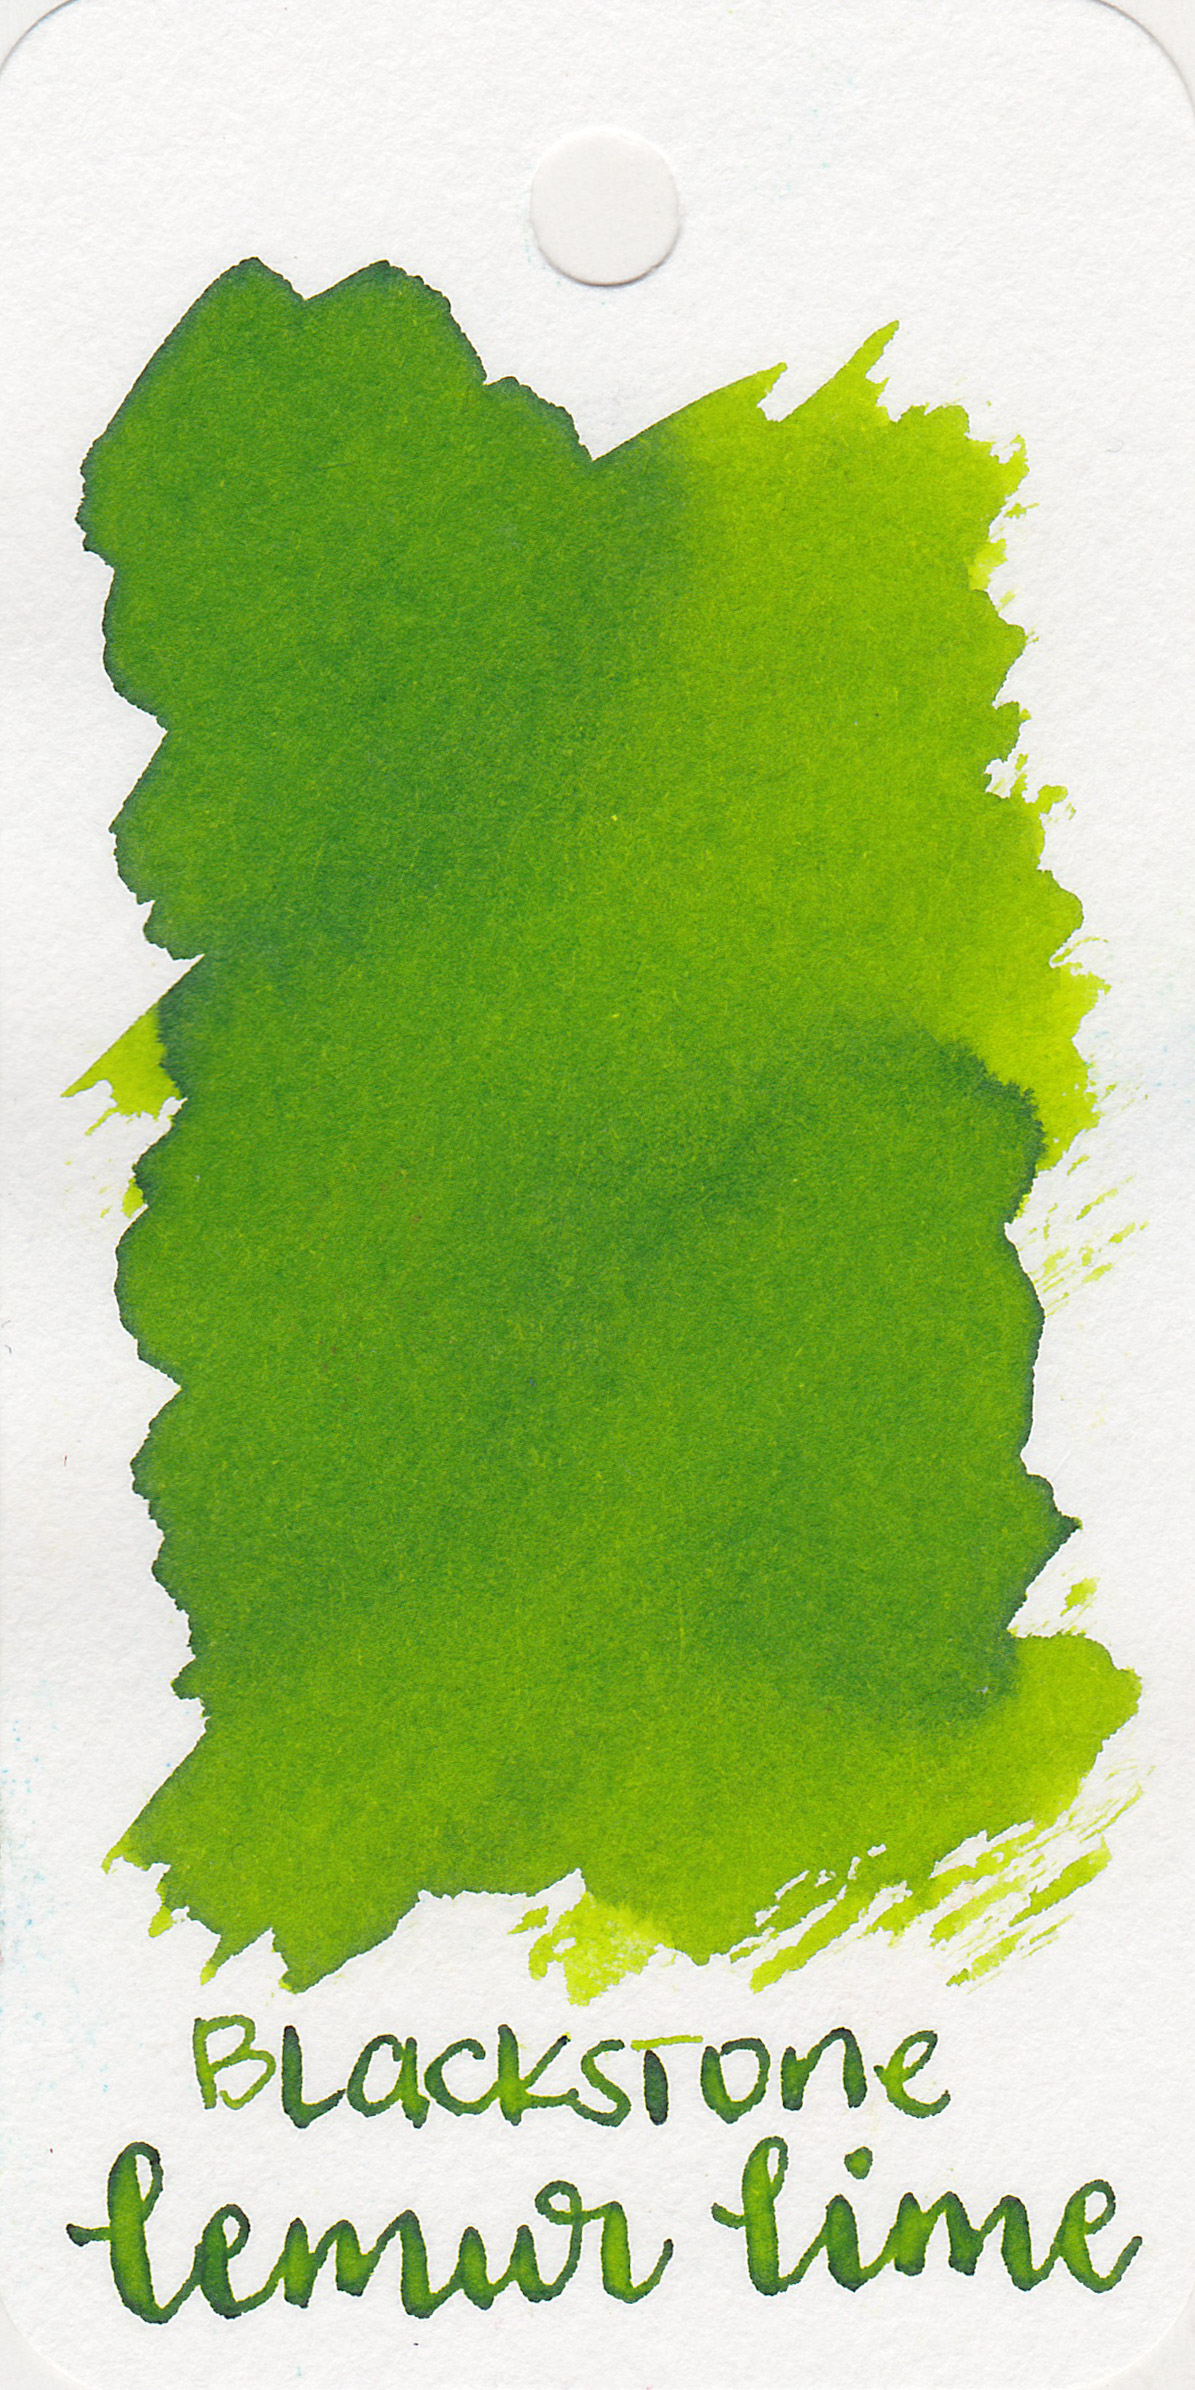 The color: - Lemur Lime is a bright green-yellow lime color.